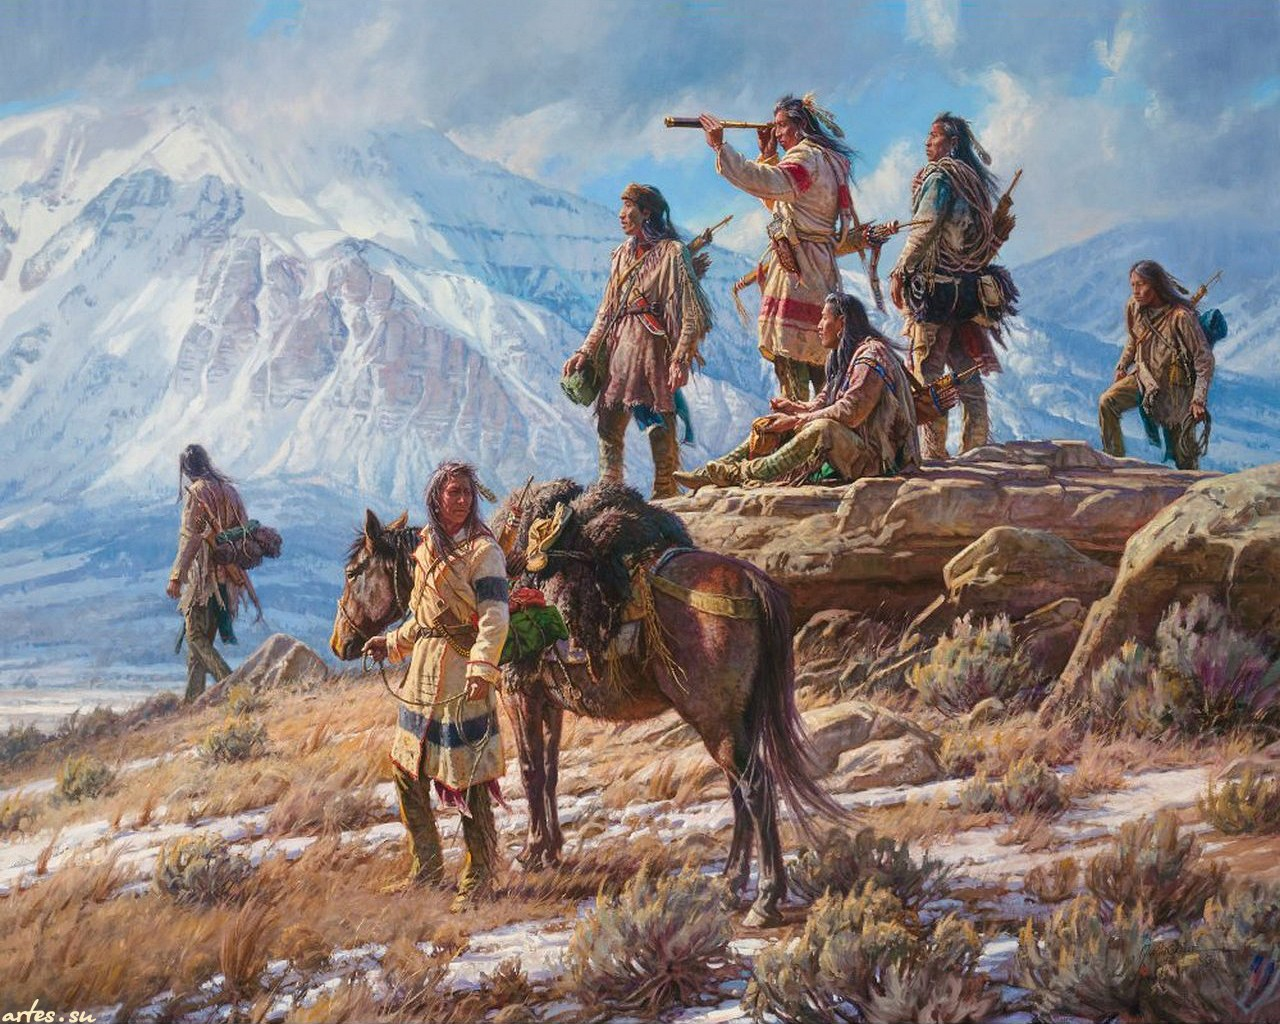 an analysis of native americanswestern farmersand african americans in the later 19th century The complaints of native americans, western farmers, and african americans in thelater 19th century are the result of too little government action when problems began toarise in the west, only then did the american government hastily find even moredisputable solutions.